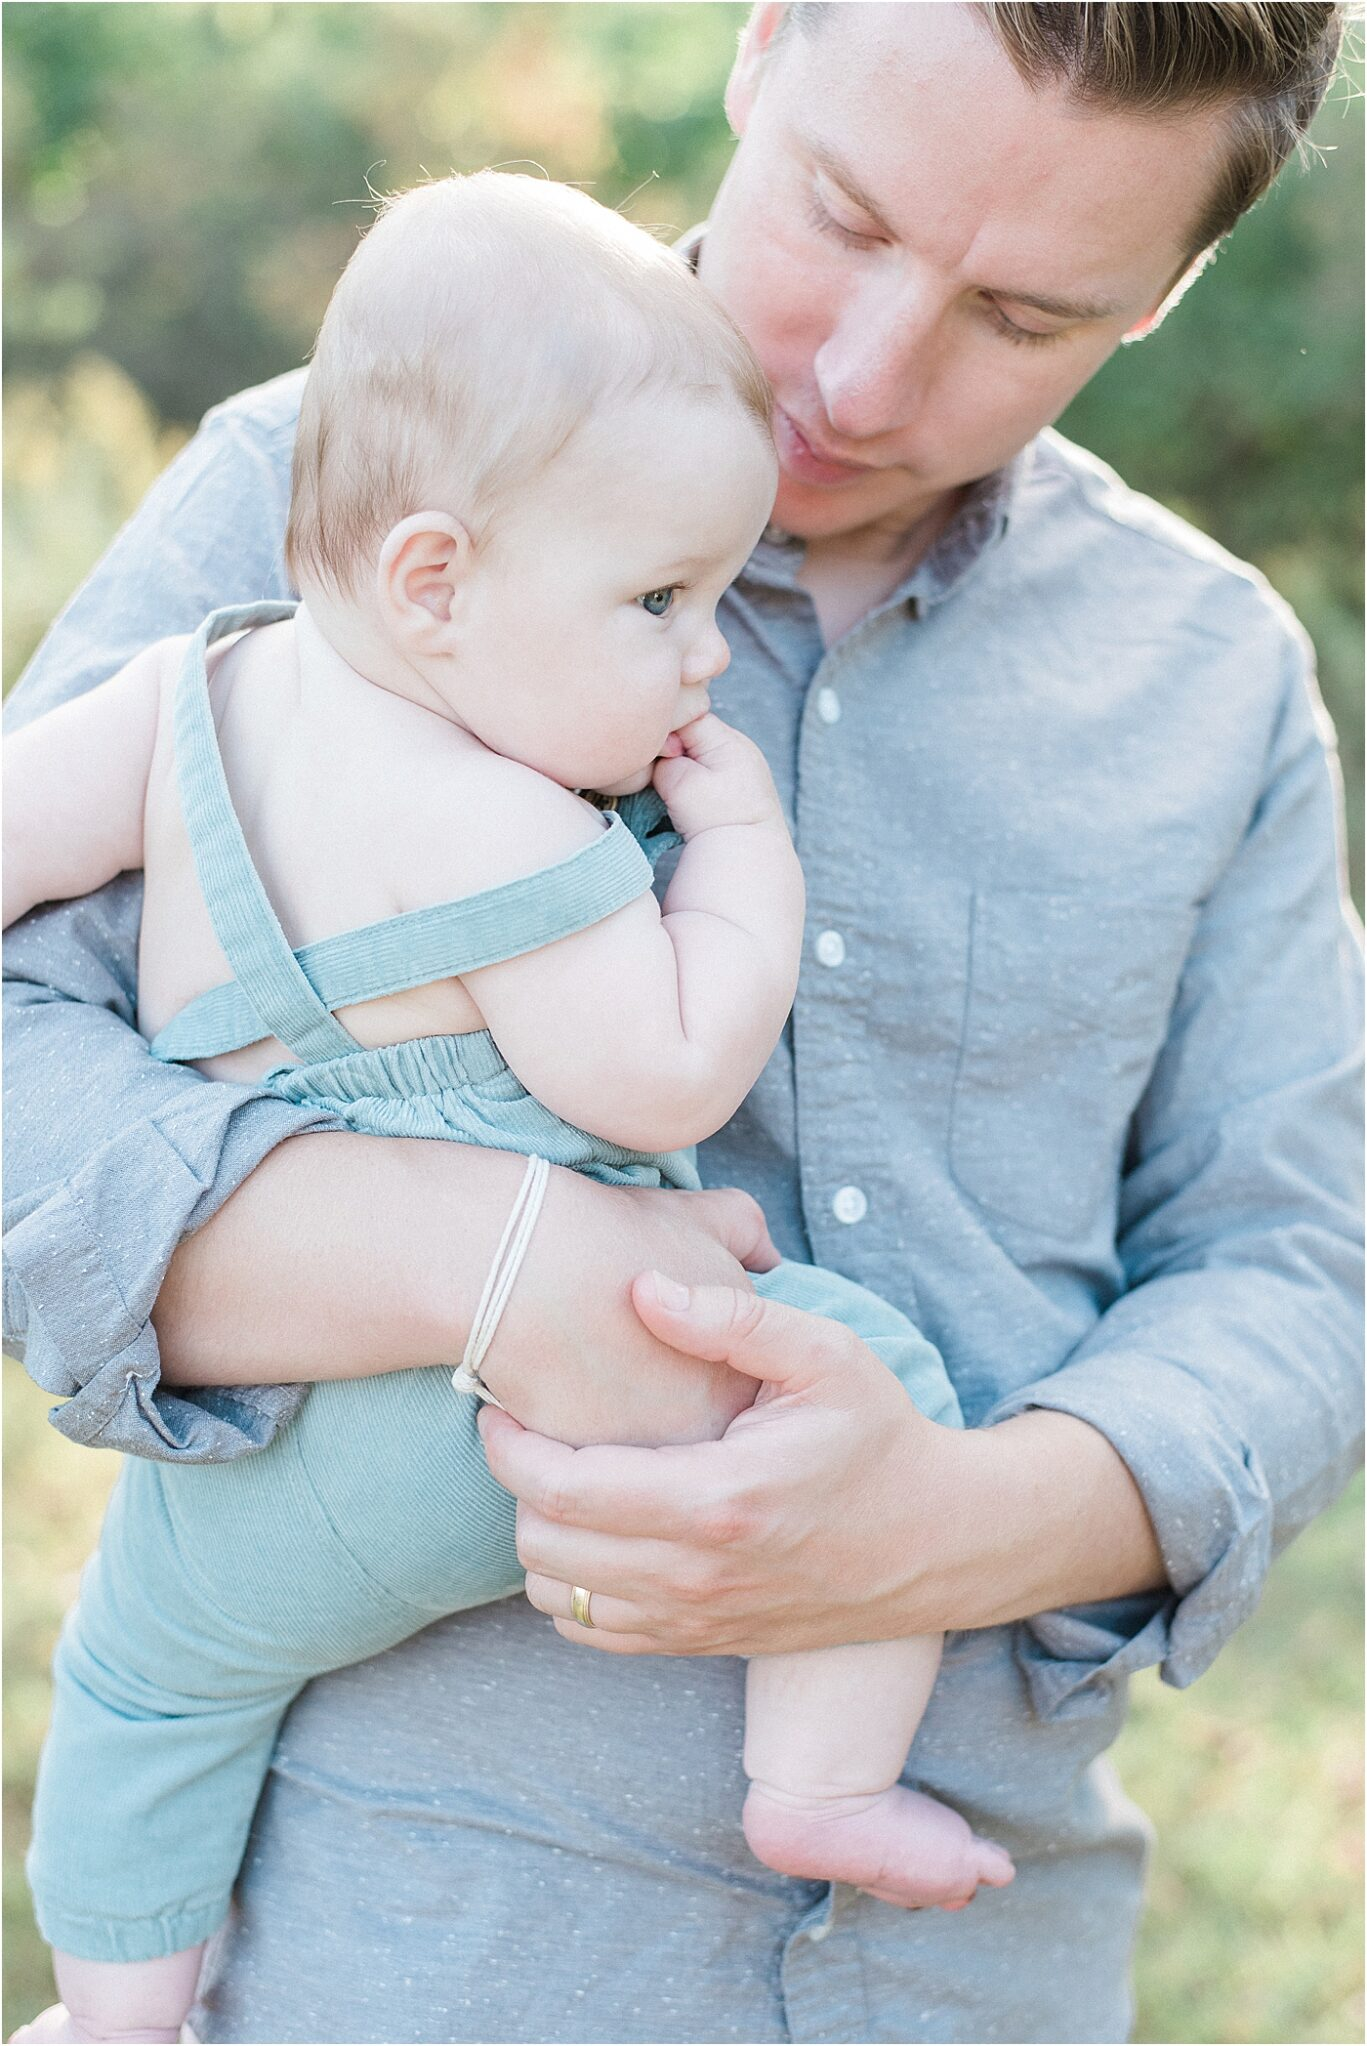 Father and son photo by Lindsay Konopa Photography.